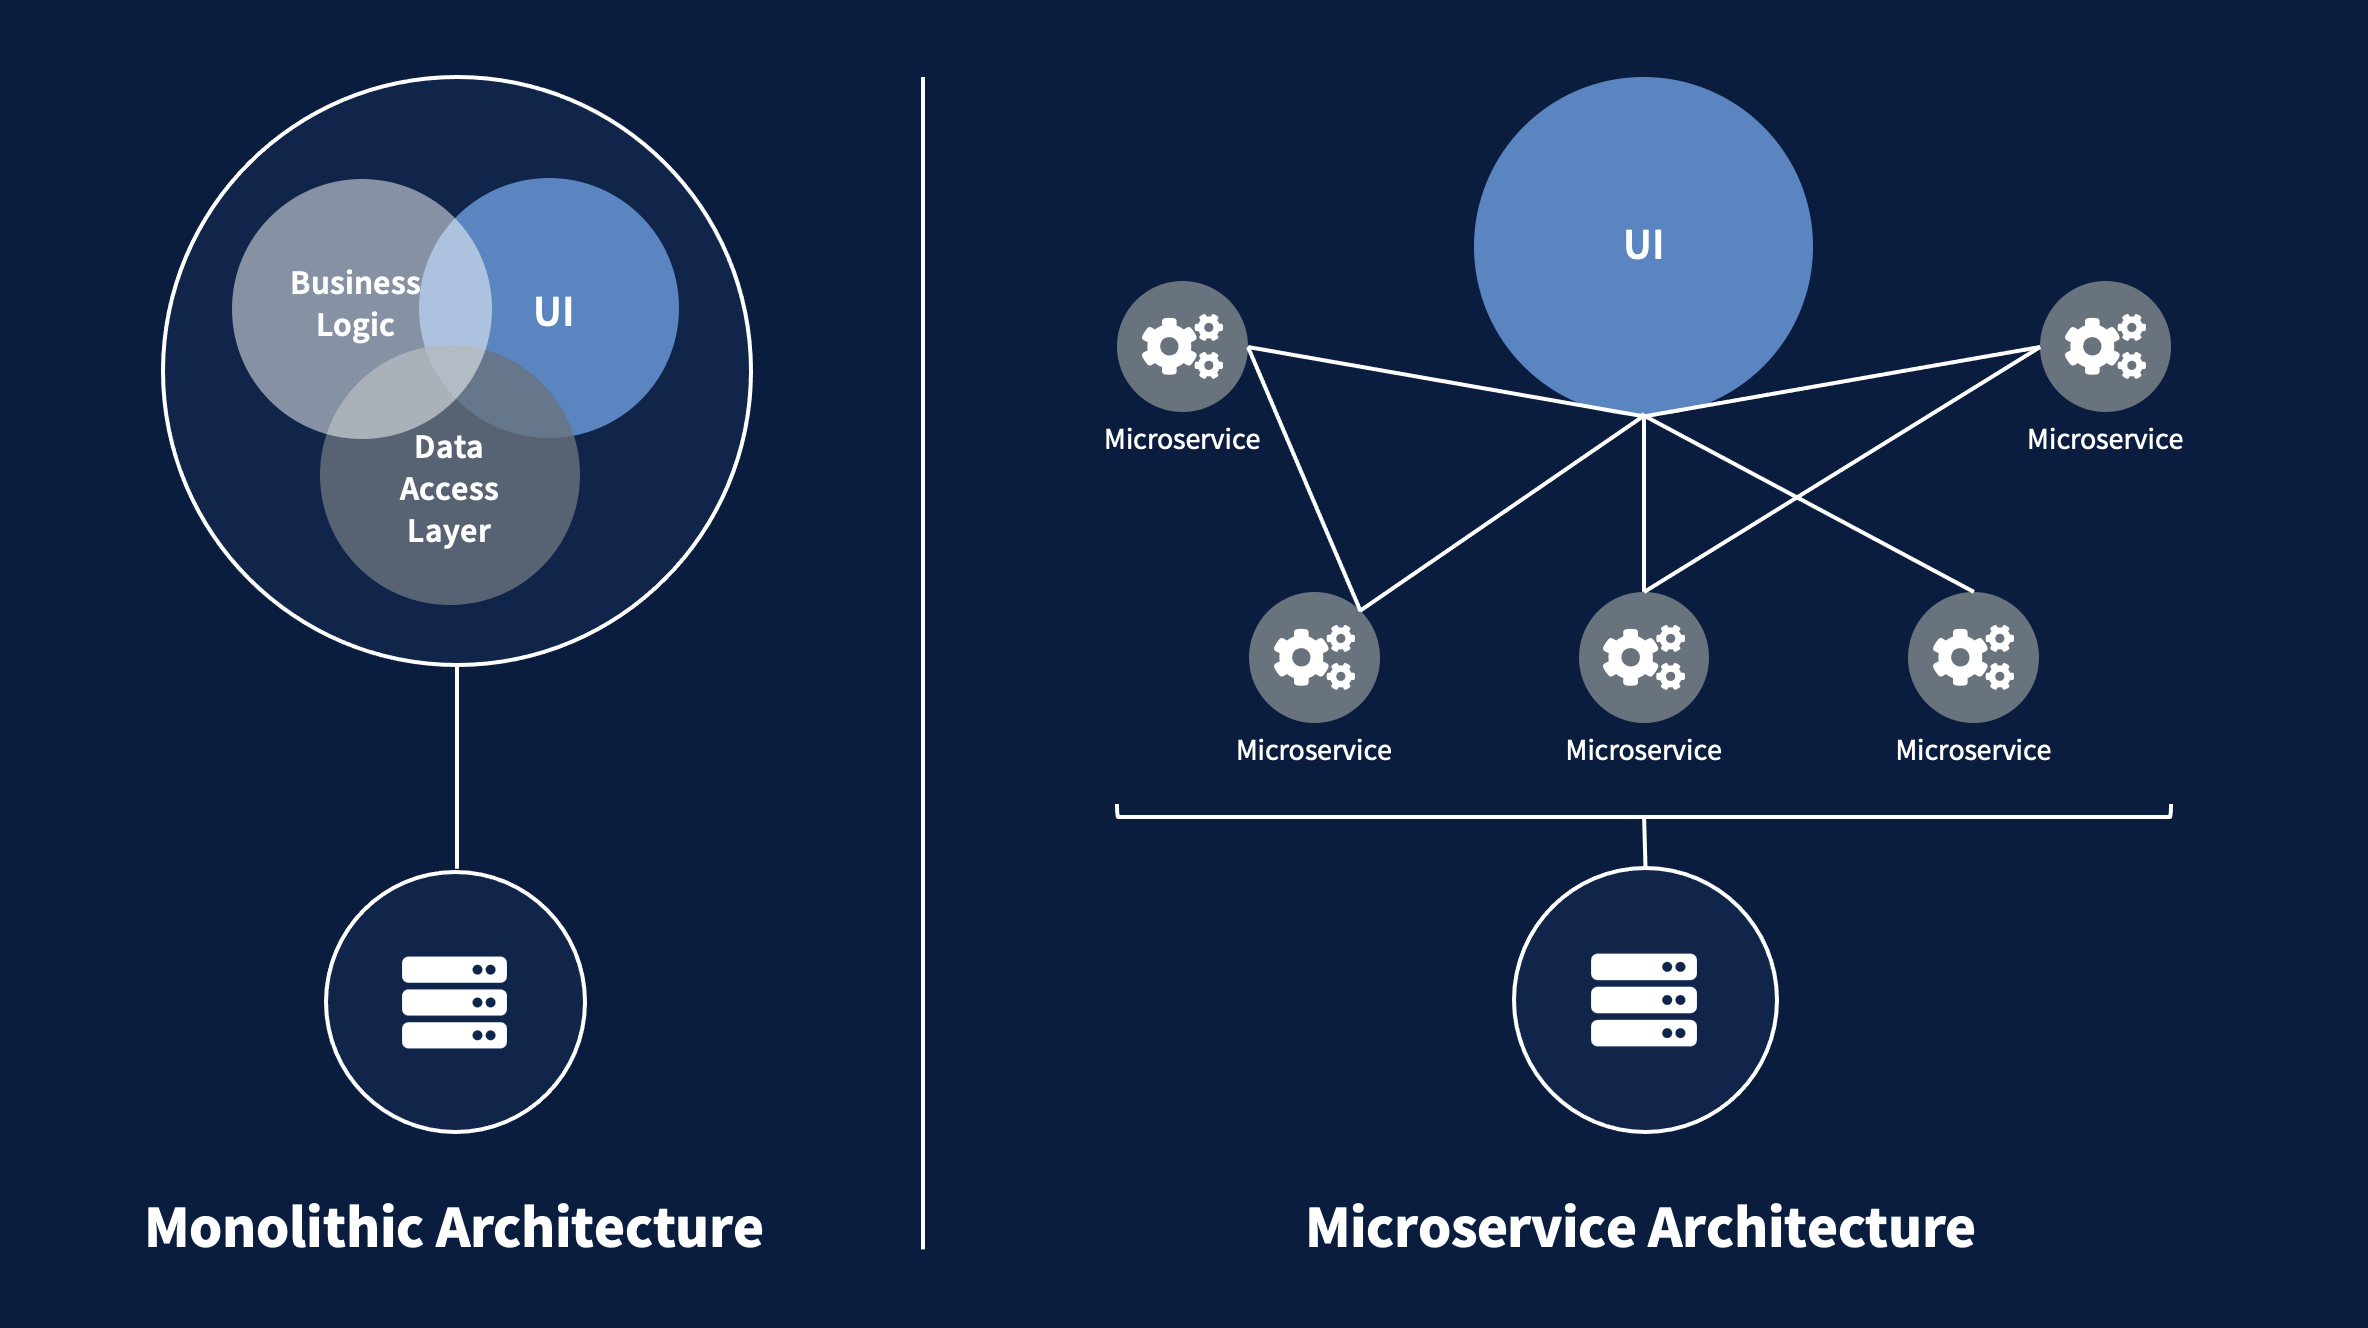 infographic explaining the difference between amonolithic and a microservices architecture